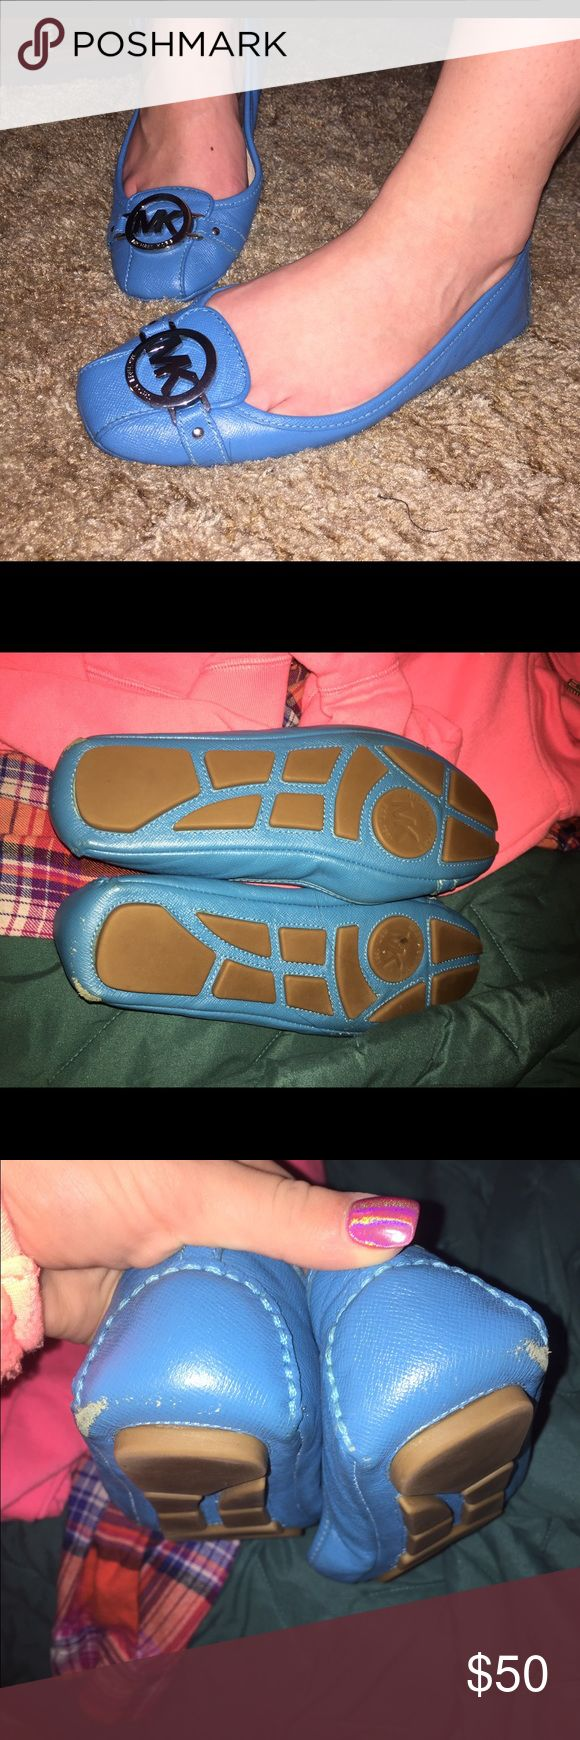 MICHAEL KORS FULTON FLATS AUTHENTIC MK FULTON FLATS IN BRIGHT BLUE WITH SILVER ACCENTS. USED ONLY TWICE. EUC. HAS SLIGHT WEAR ON BOTTOM FROM WEAR OUTSIDE. NORMAL AND NOT NOTICEABLE WHEN ON. SIZE 7. Michael Kors Shoes